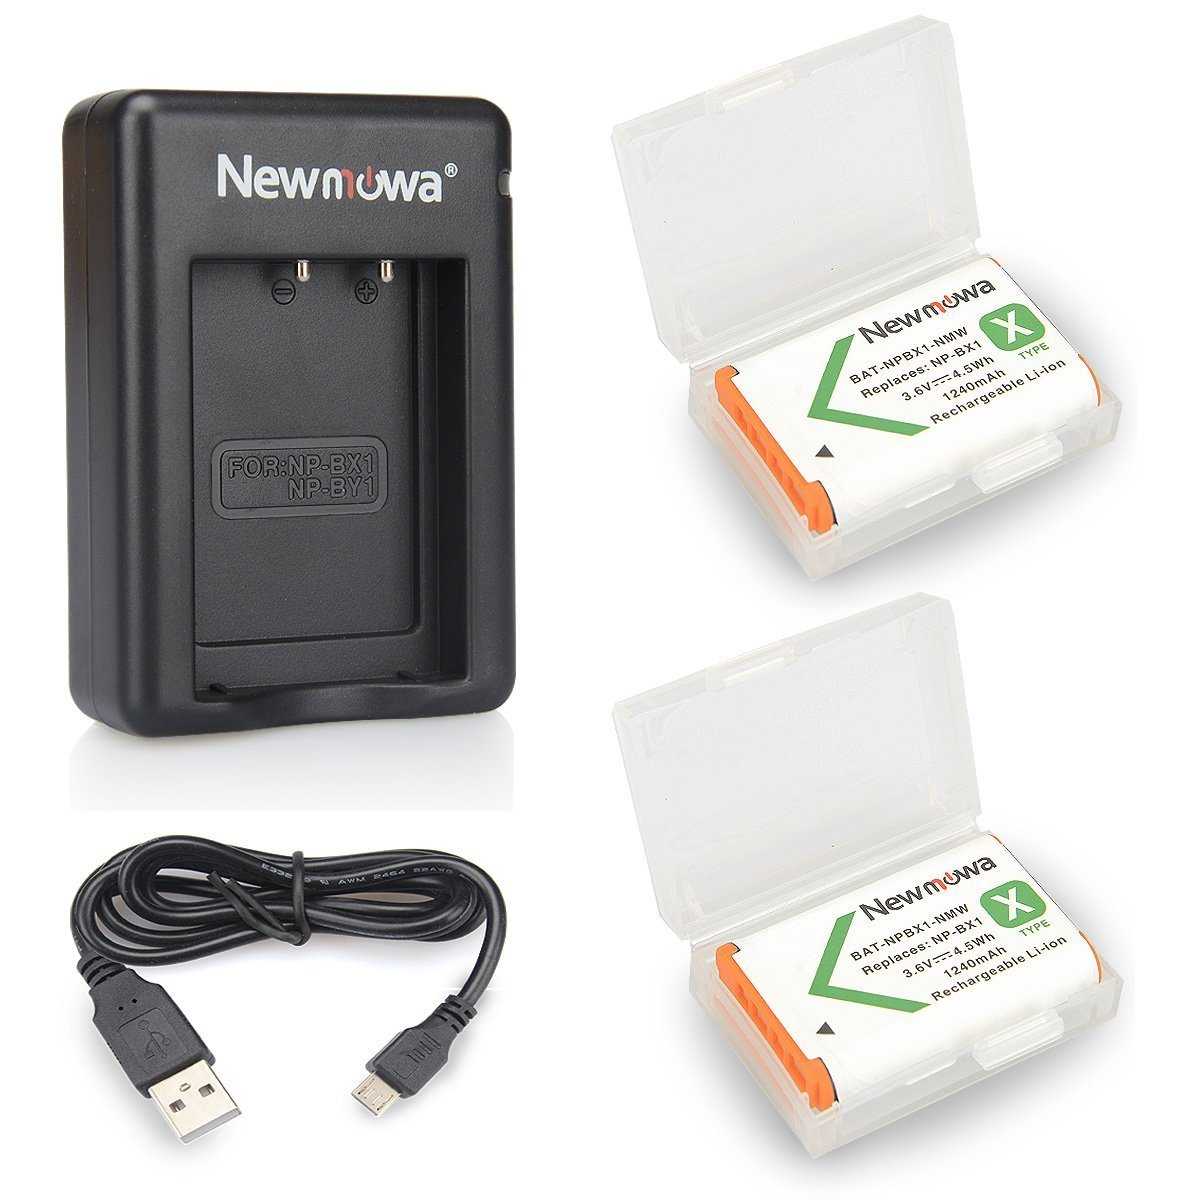 NP-BX1 Newmowa Replacement Battery (2-Pack) and Dual USB Charger Set for Sony NP-BX1/M8 and Sony Cyber-Shot DSC-RX100,DSC-RX100 II,DSC-RX100M II,DSC-RX100 III,DSC-RX100 IV,DSC-RX100 V,DSC-RX100 VII by Newmowa